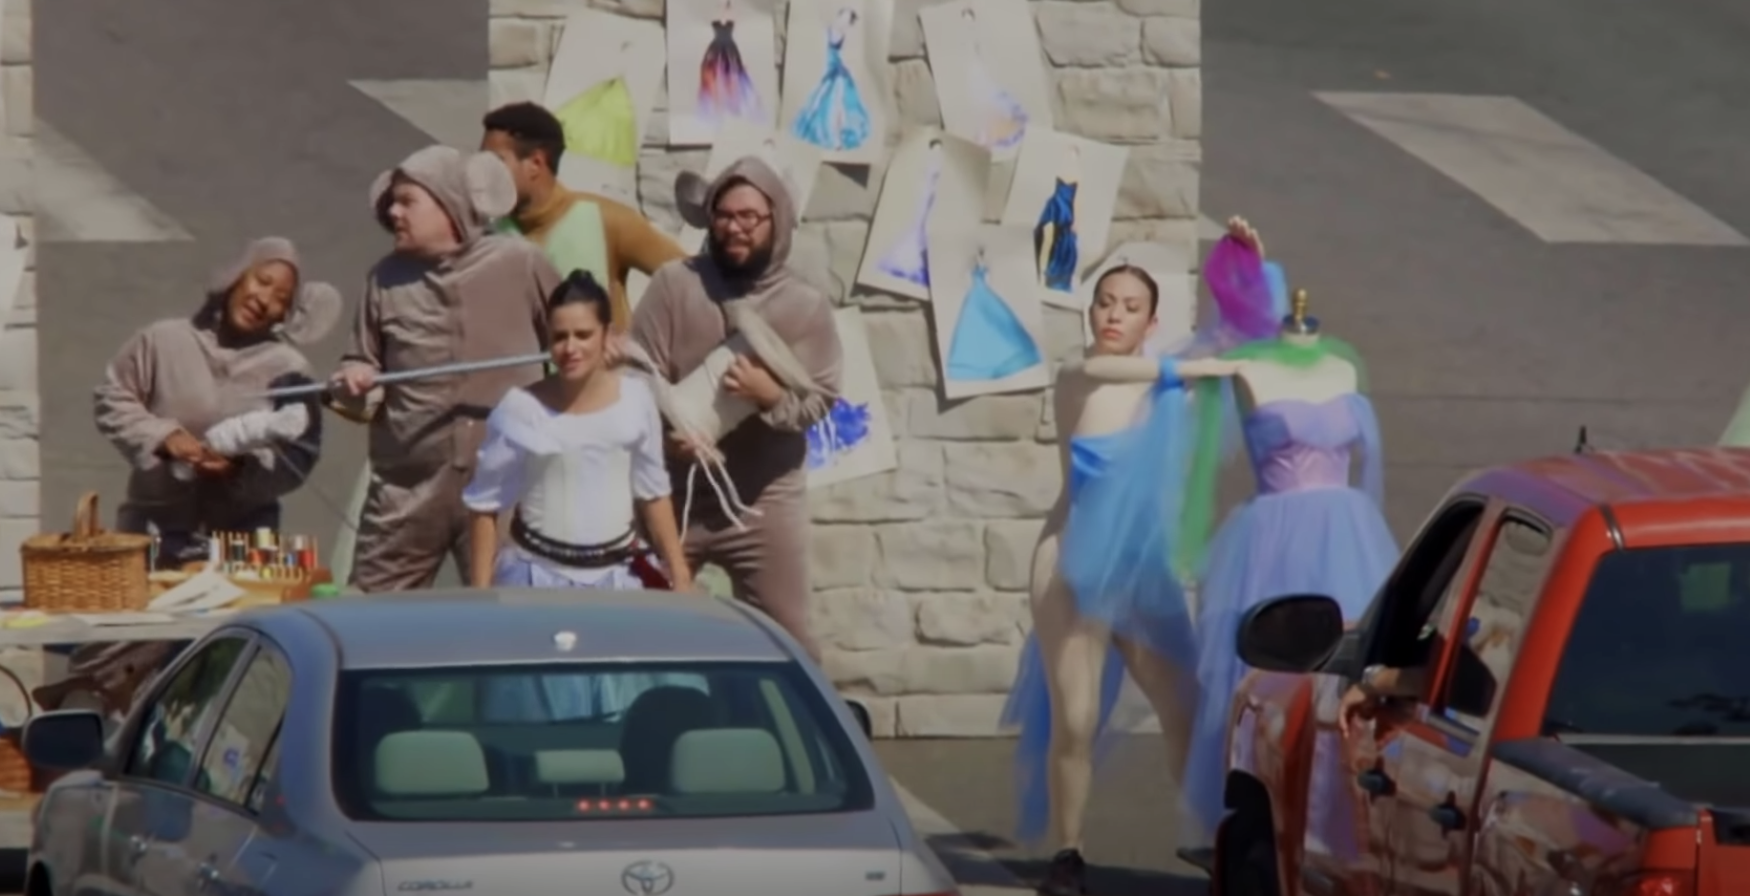 The cast performing in front of cars